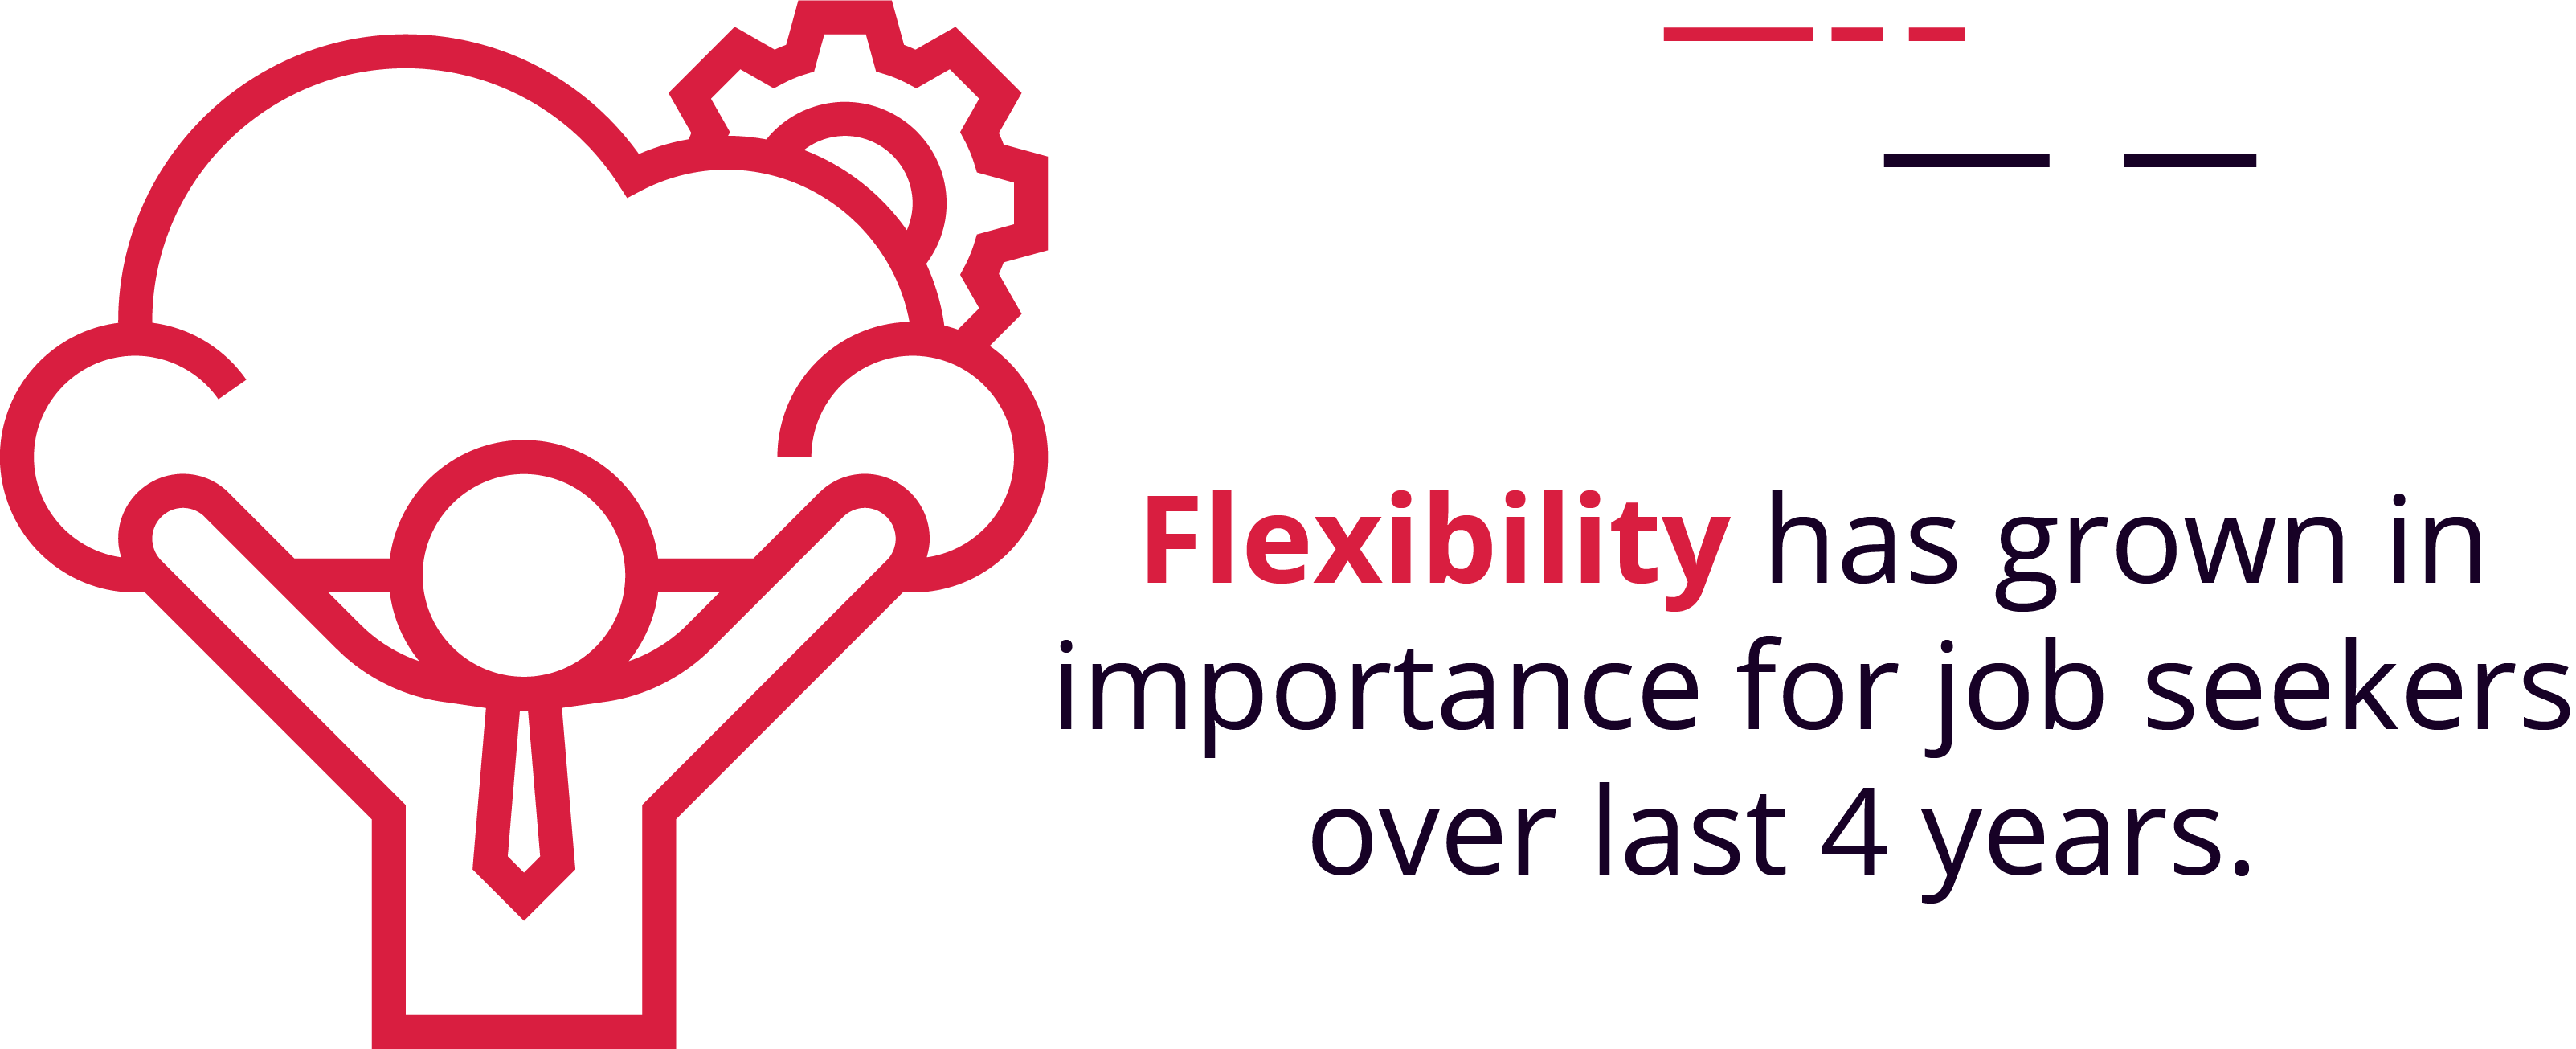 More people expect work flexibility than before